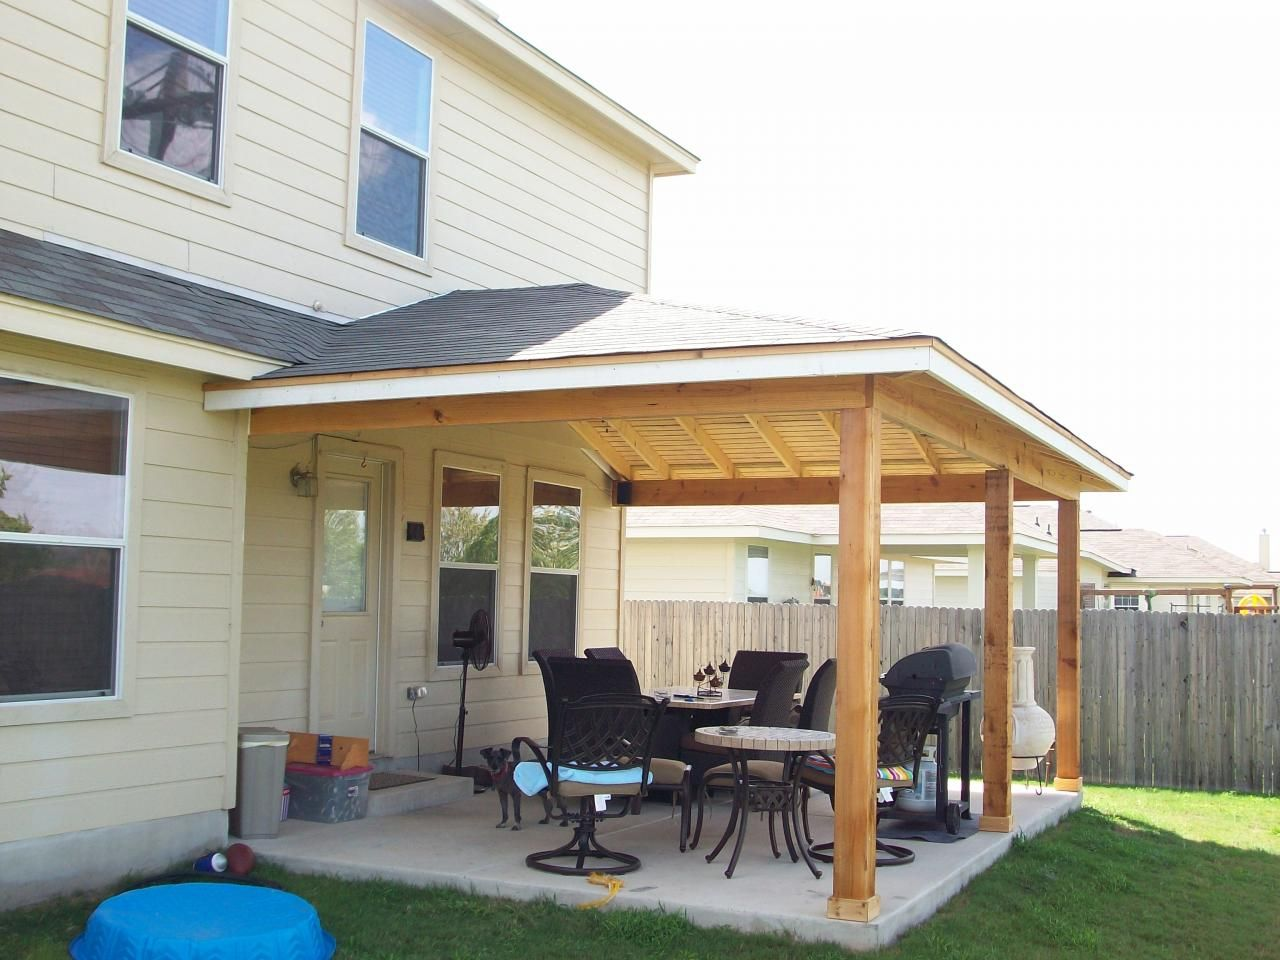 patio designs | ... Patio Covers Pictures Video Plans Designs Ideas Free Patio  Cover - Patio Designs Patio Covers Pictures Video Plans Designs